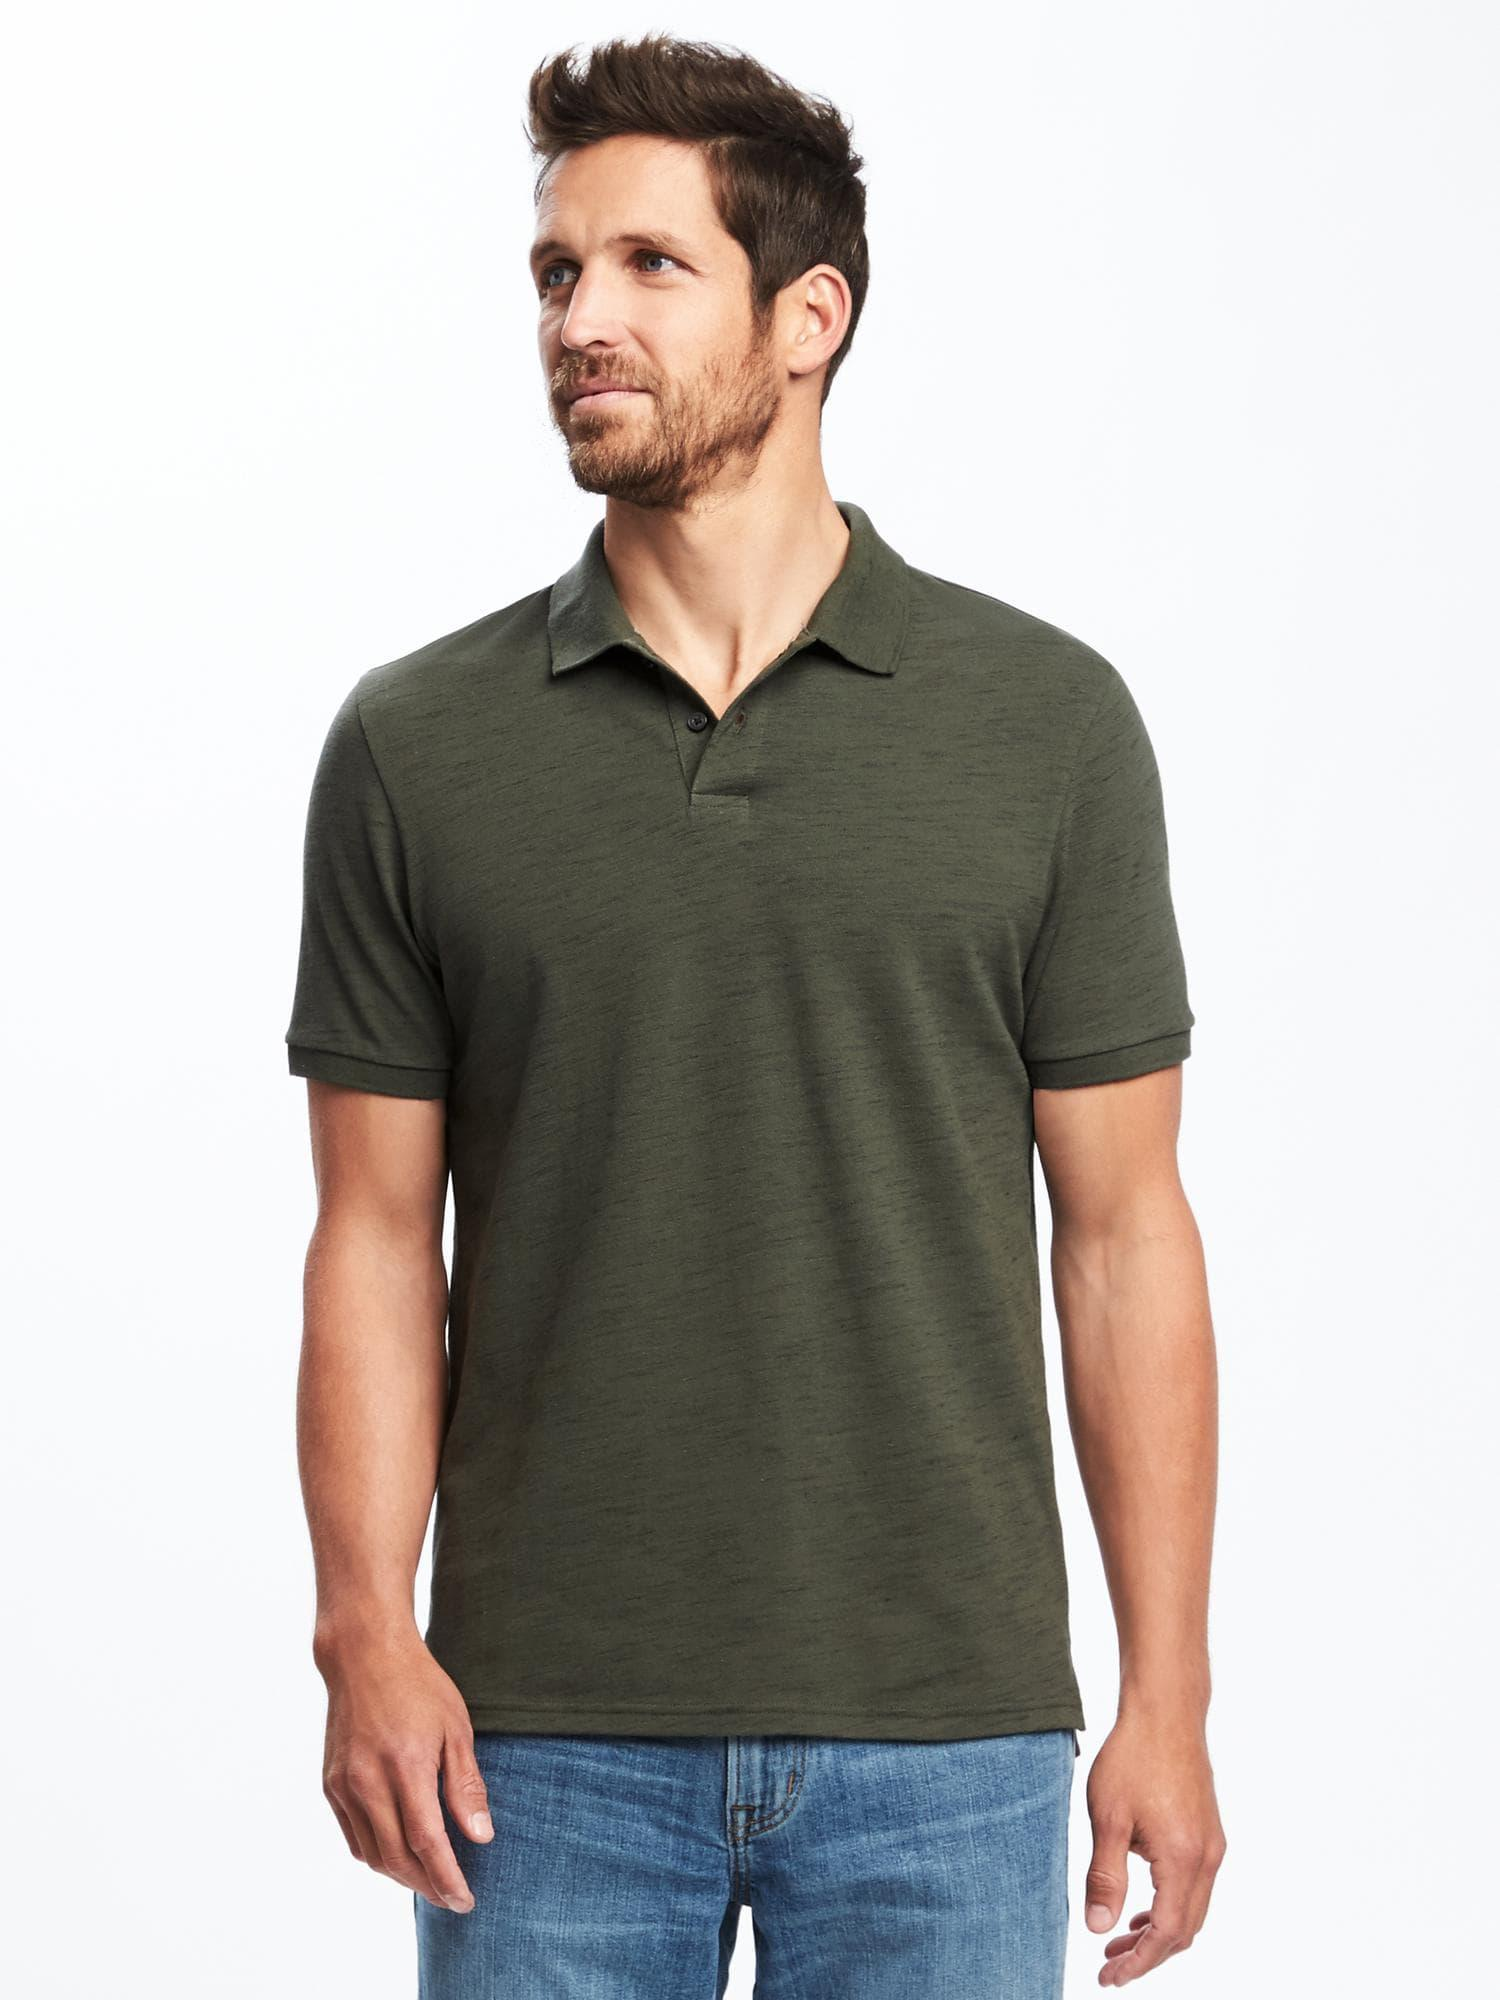 dbd917d0581d Polo Shirts At Old Navy - DREAMWORKS